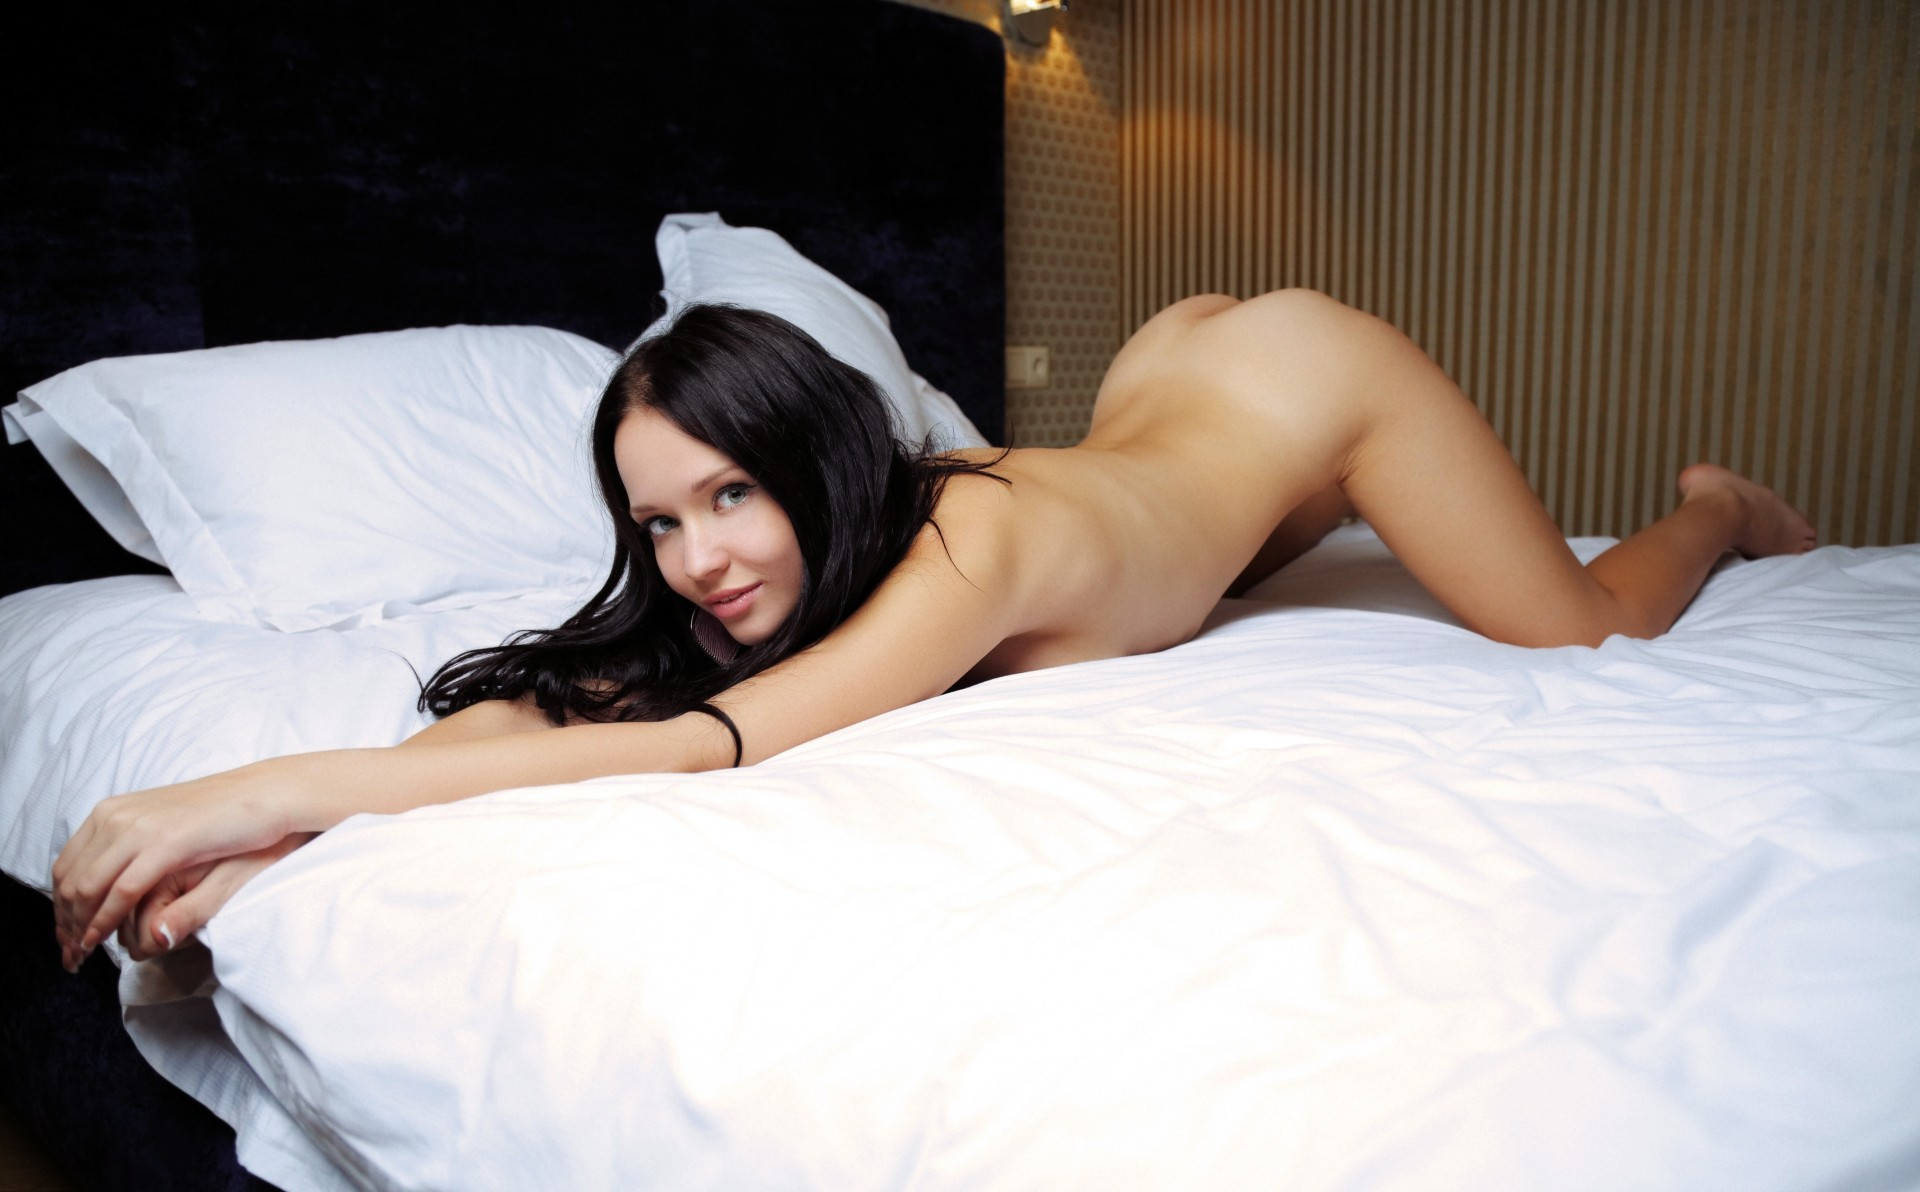 Porn wallpapers stockings bed chest sasha cane model naked ass